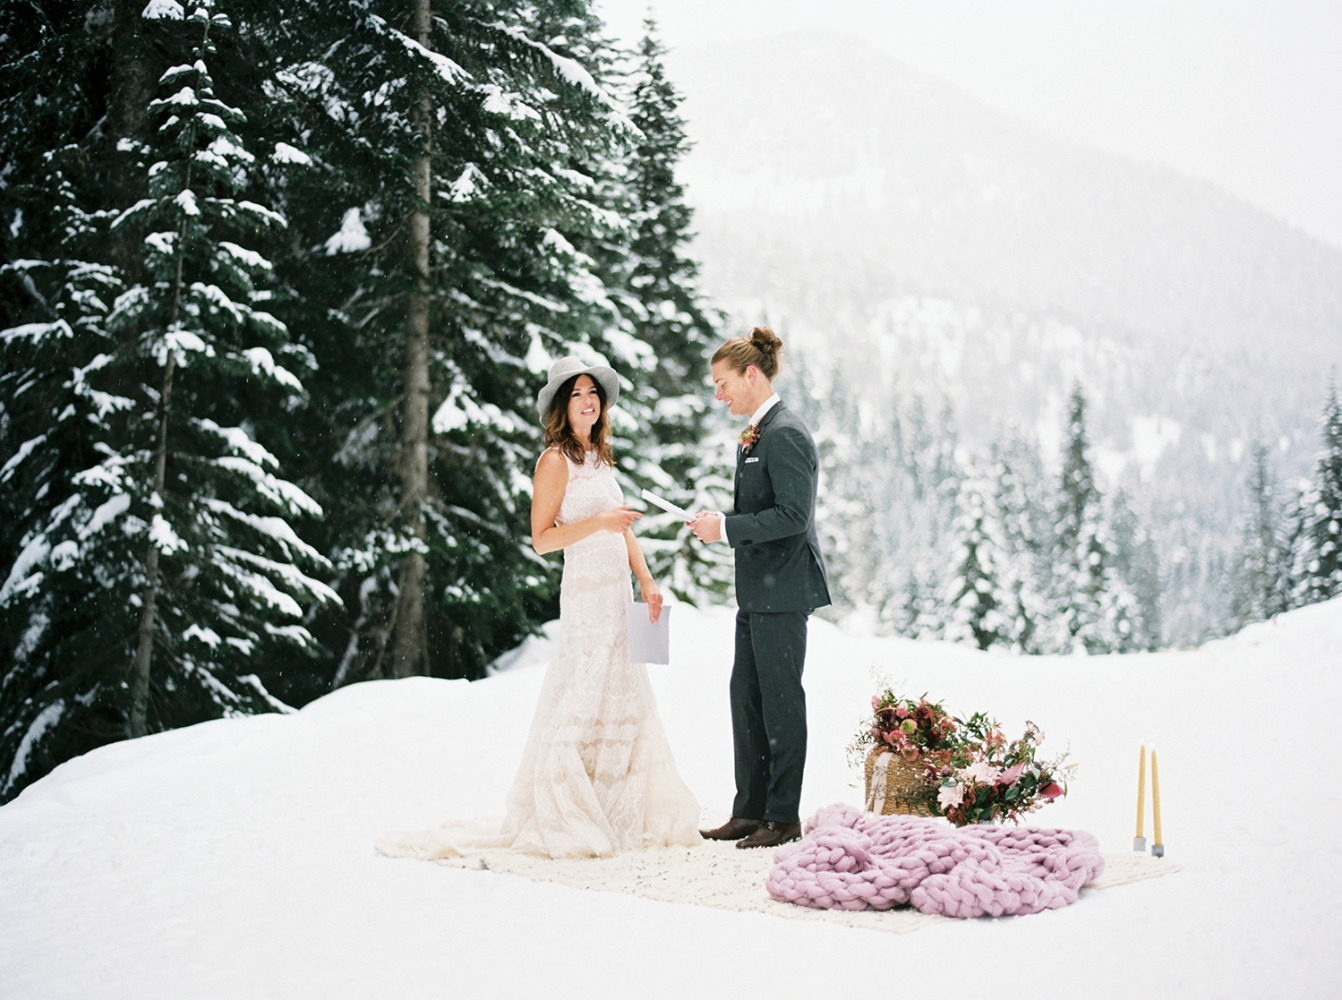 How To Have A Winter Wedding With An Alternative Boho Style